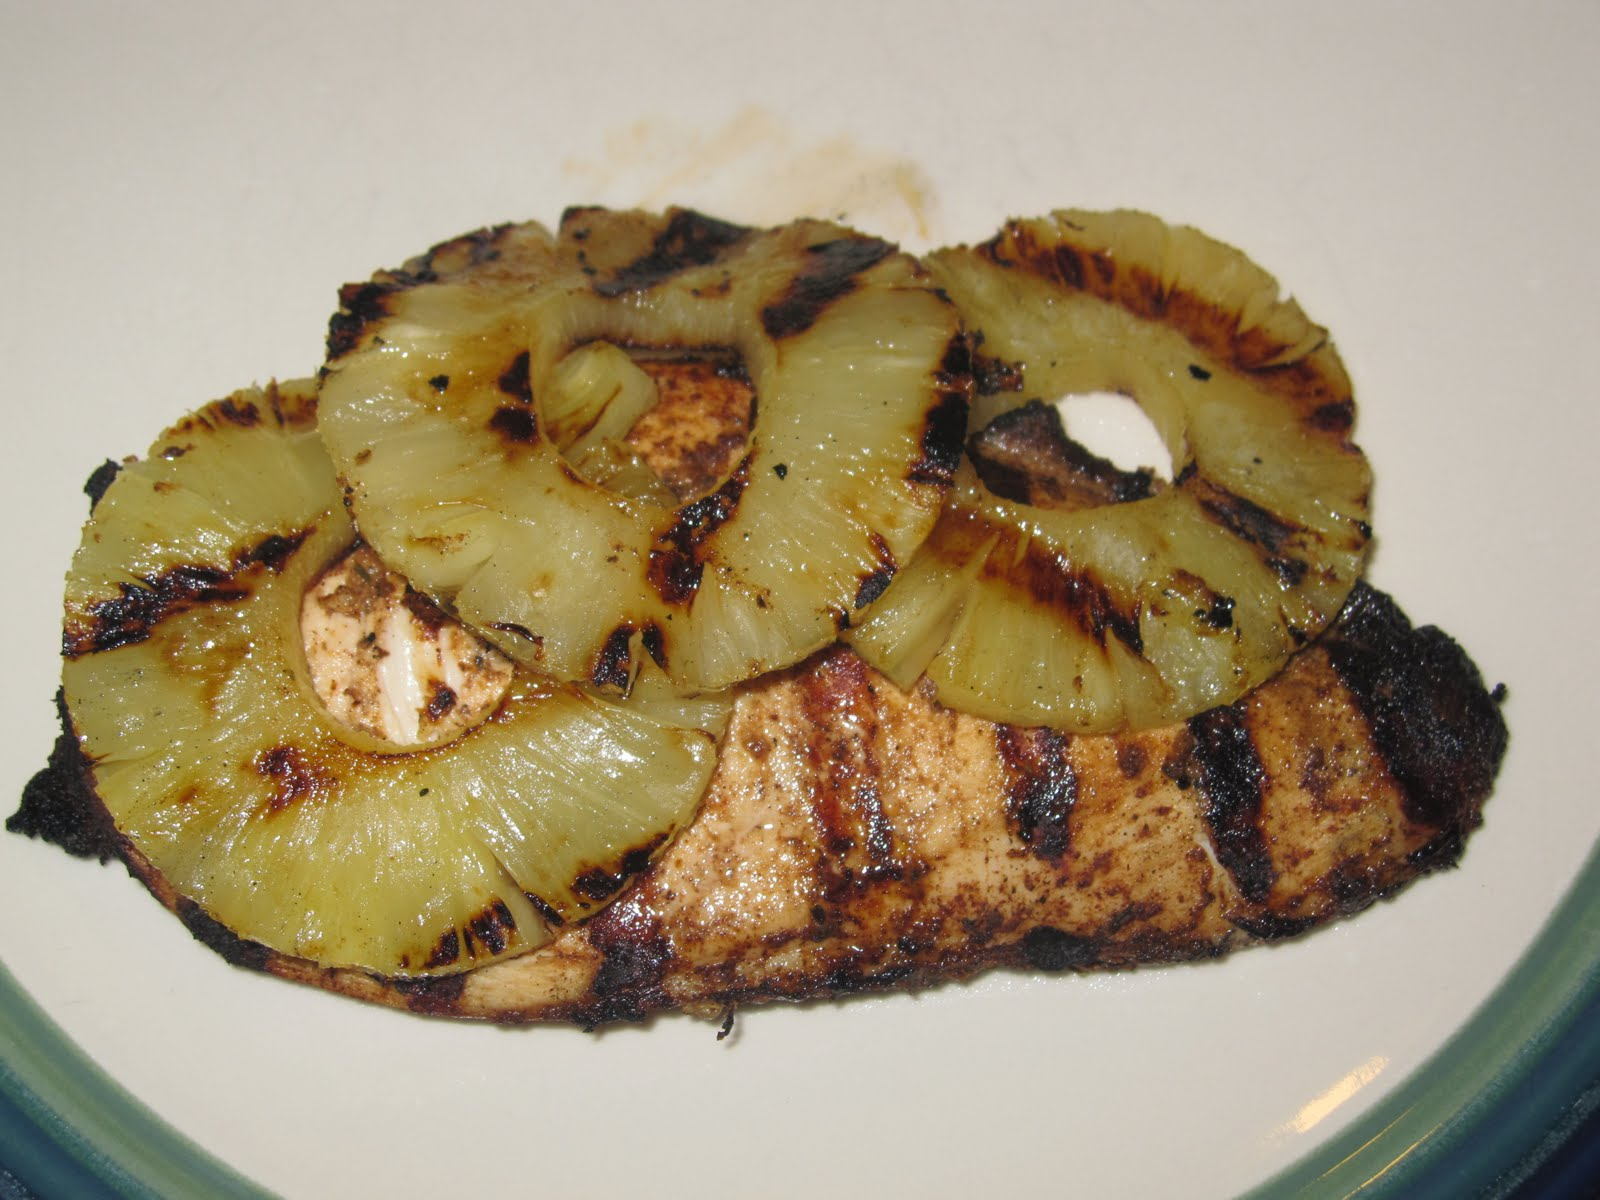 Marlena's Menu: Grilled Jerk Chicken and Pineapple